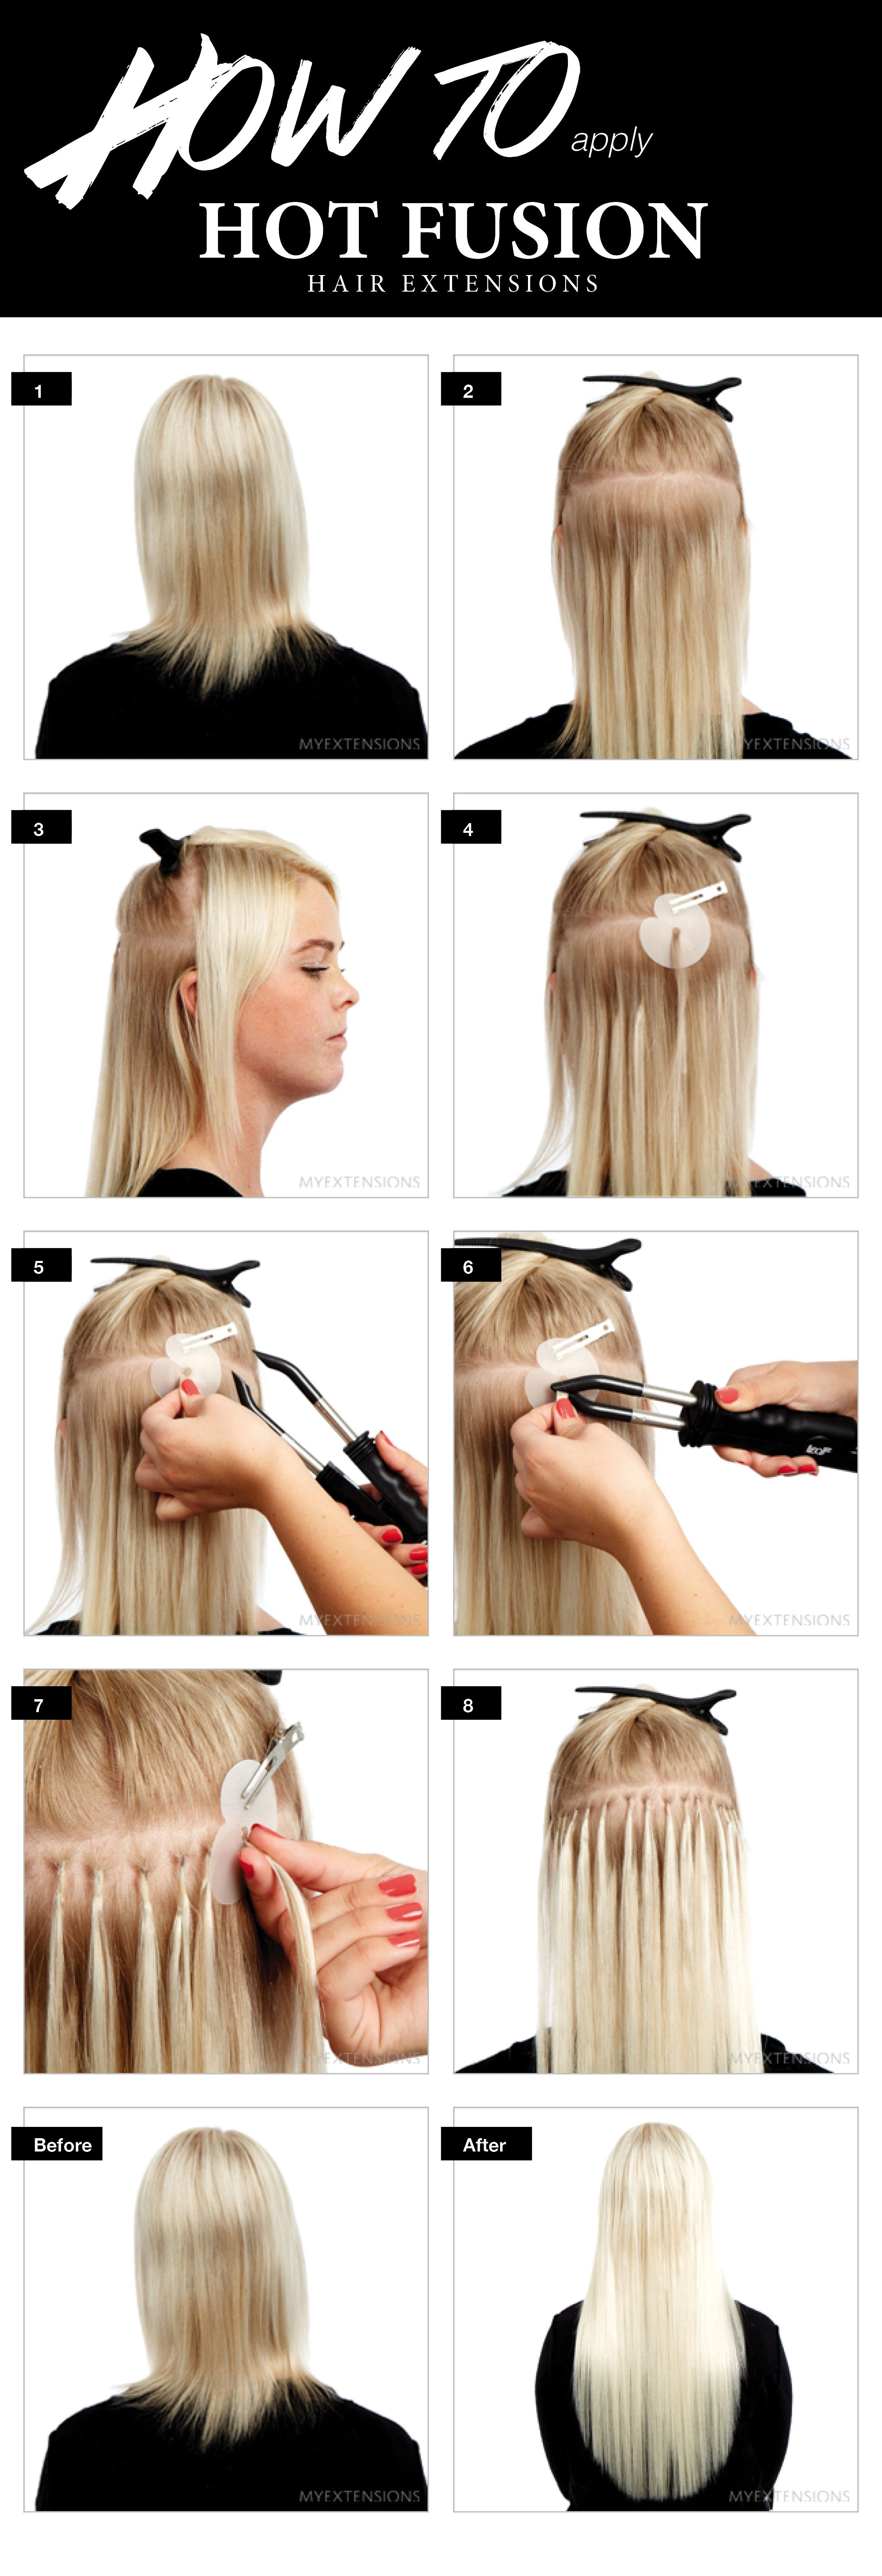 Pin By Marina On 17 Coiff Divers Pinterest Hair Extensions Hair